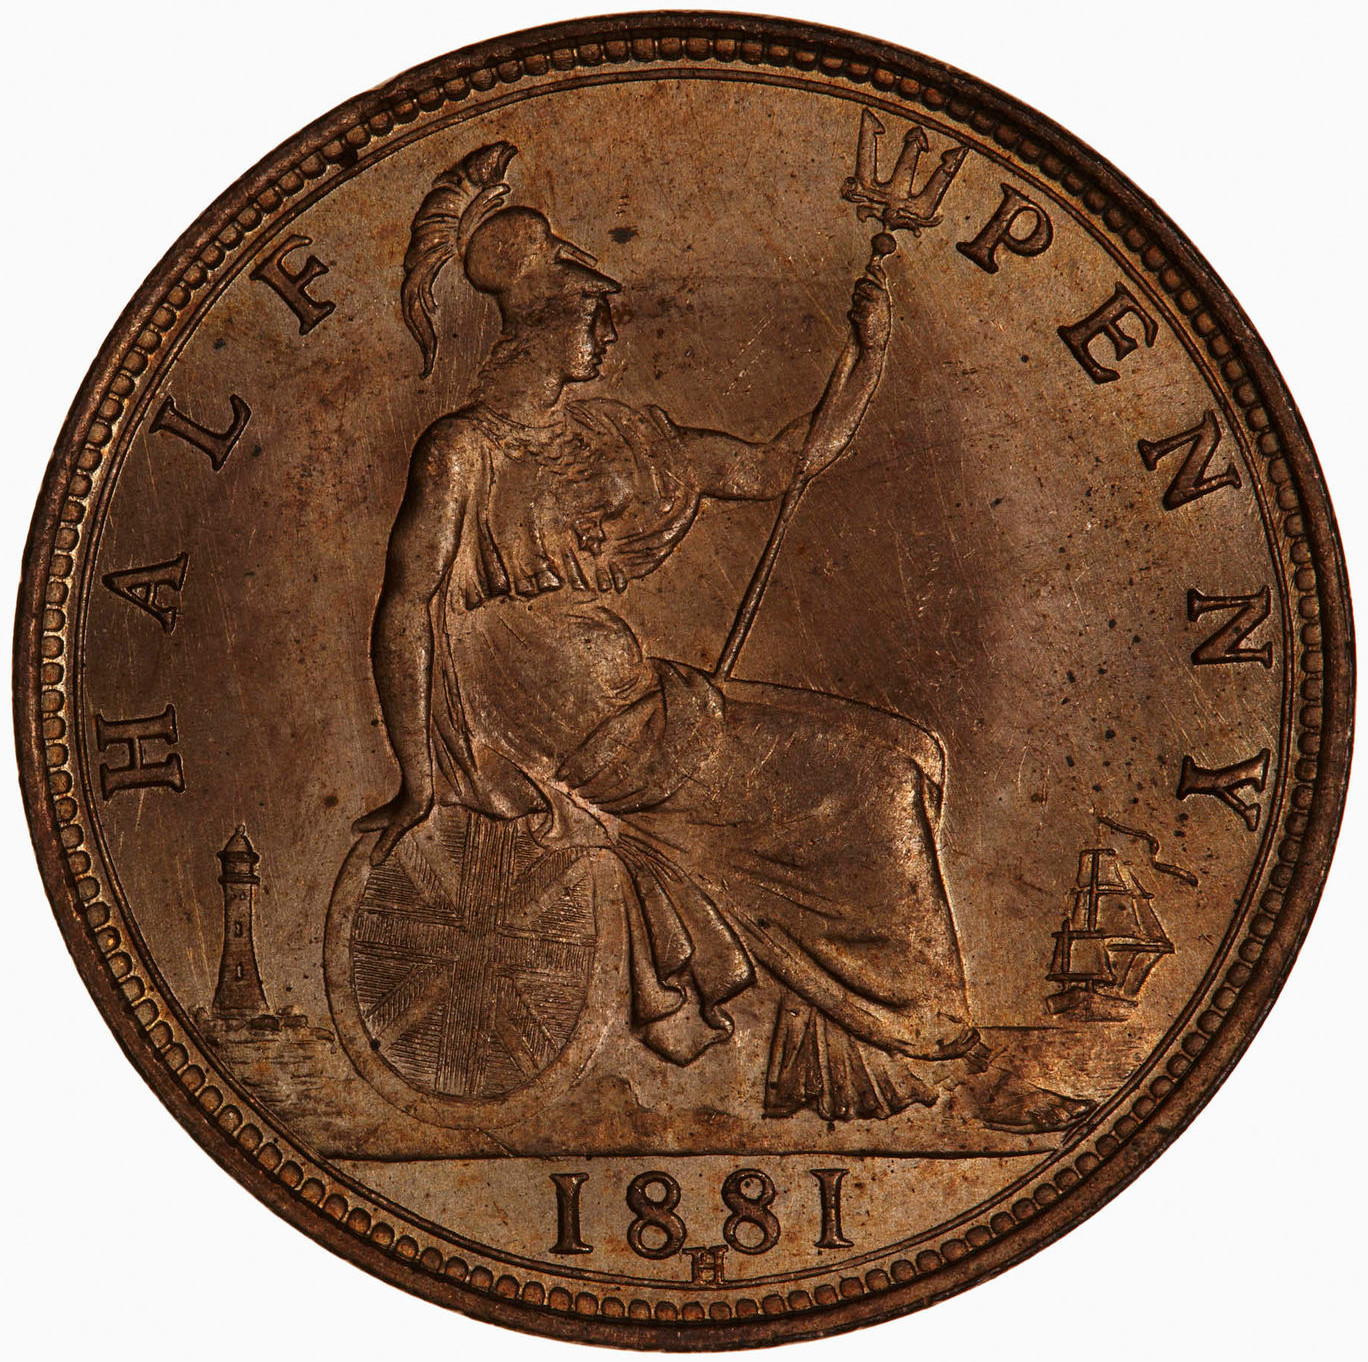 Halfpenny (Britannia, third design): Photo Museums Victoria Collections: Coin - Halfpenny, Queen Victoria, Great Britain, 1881